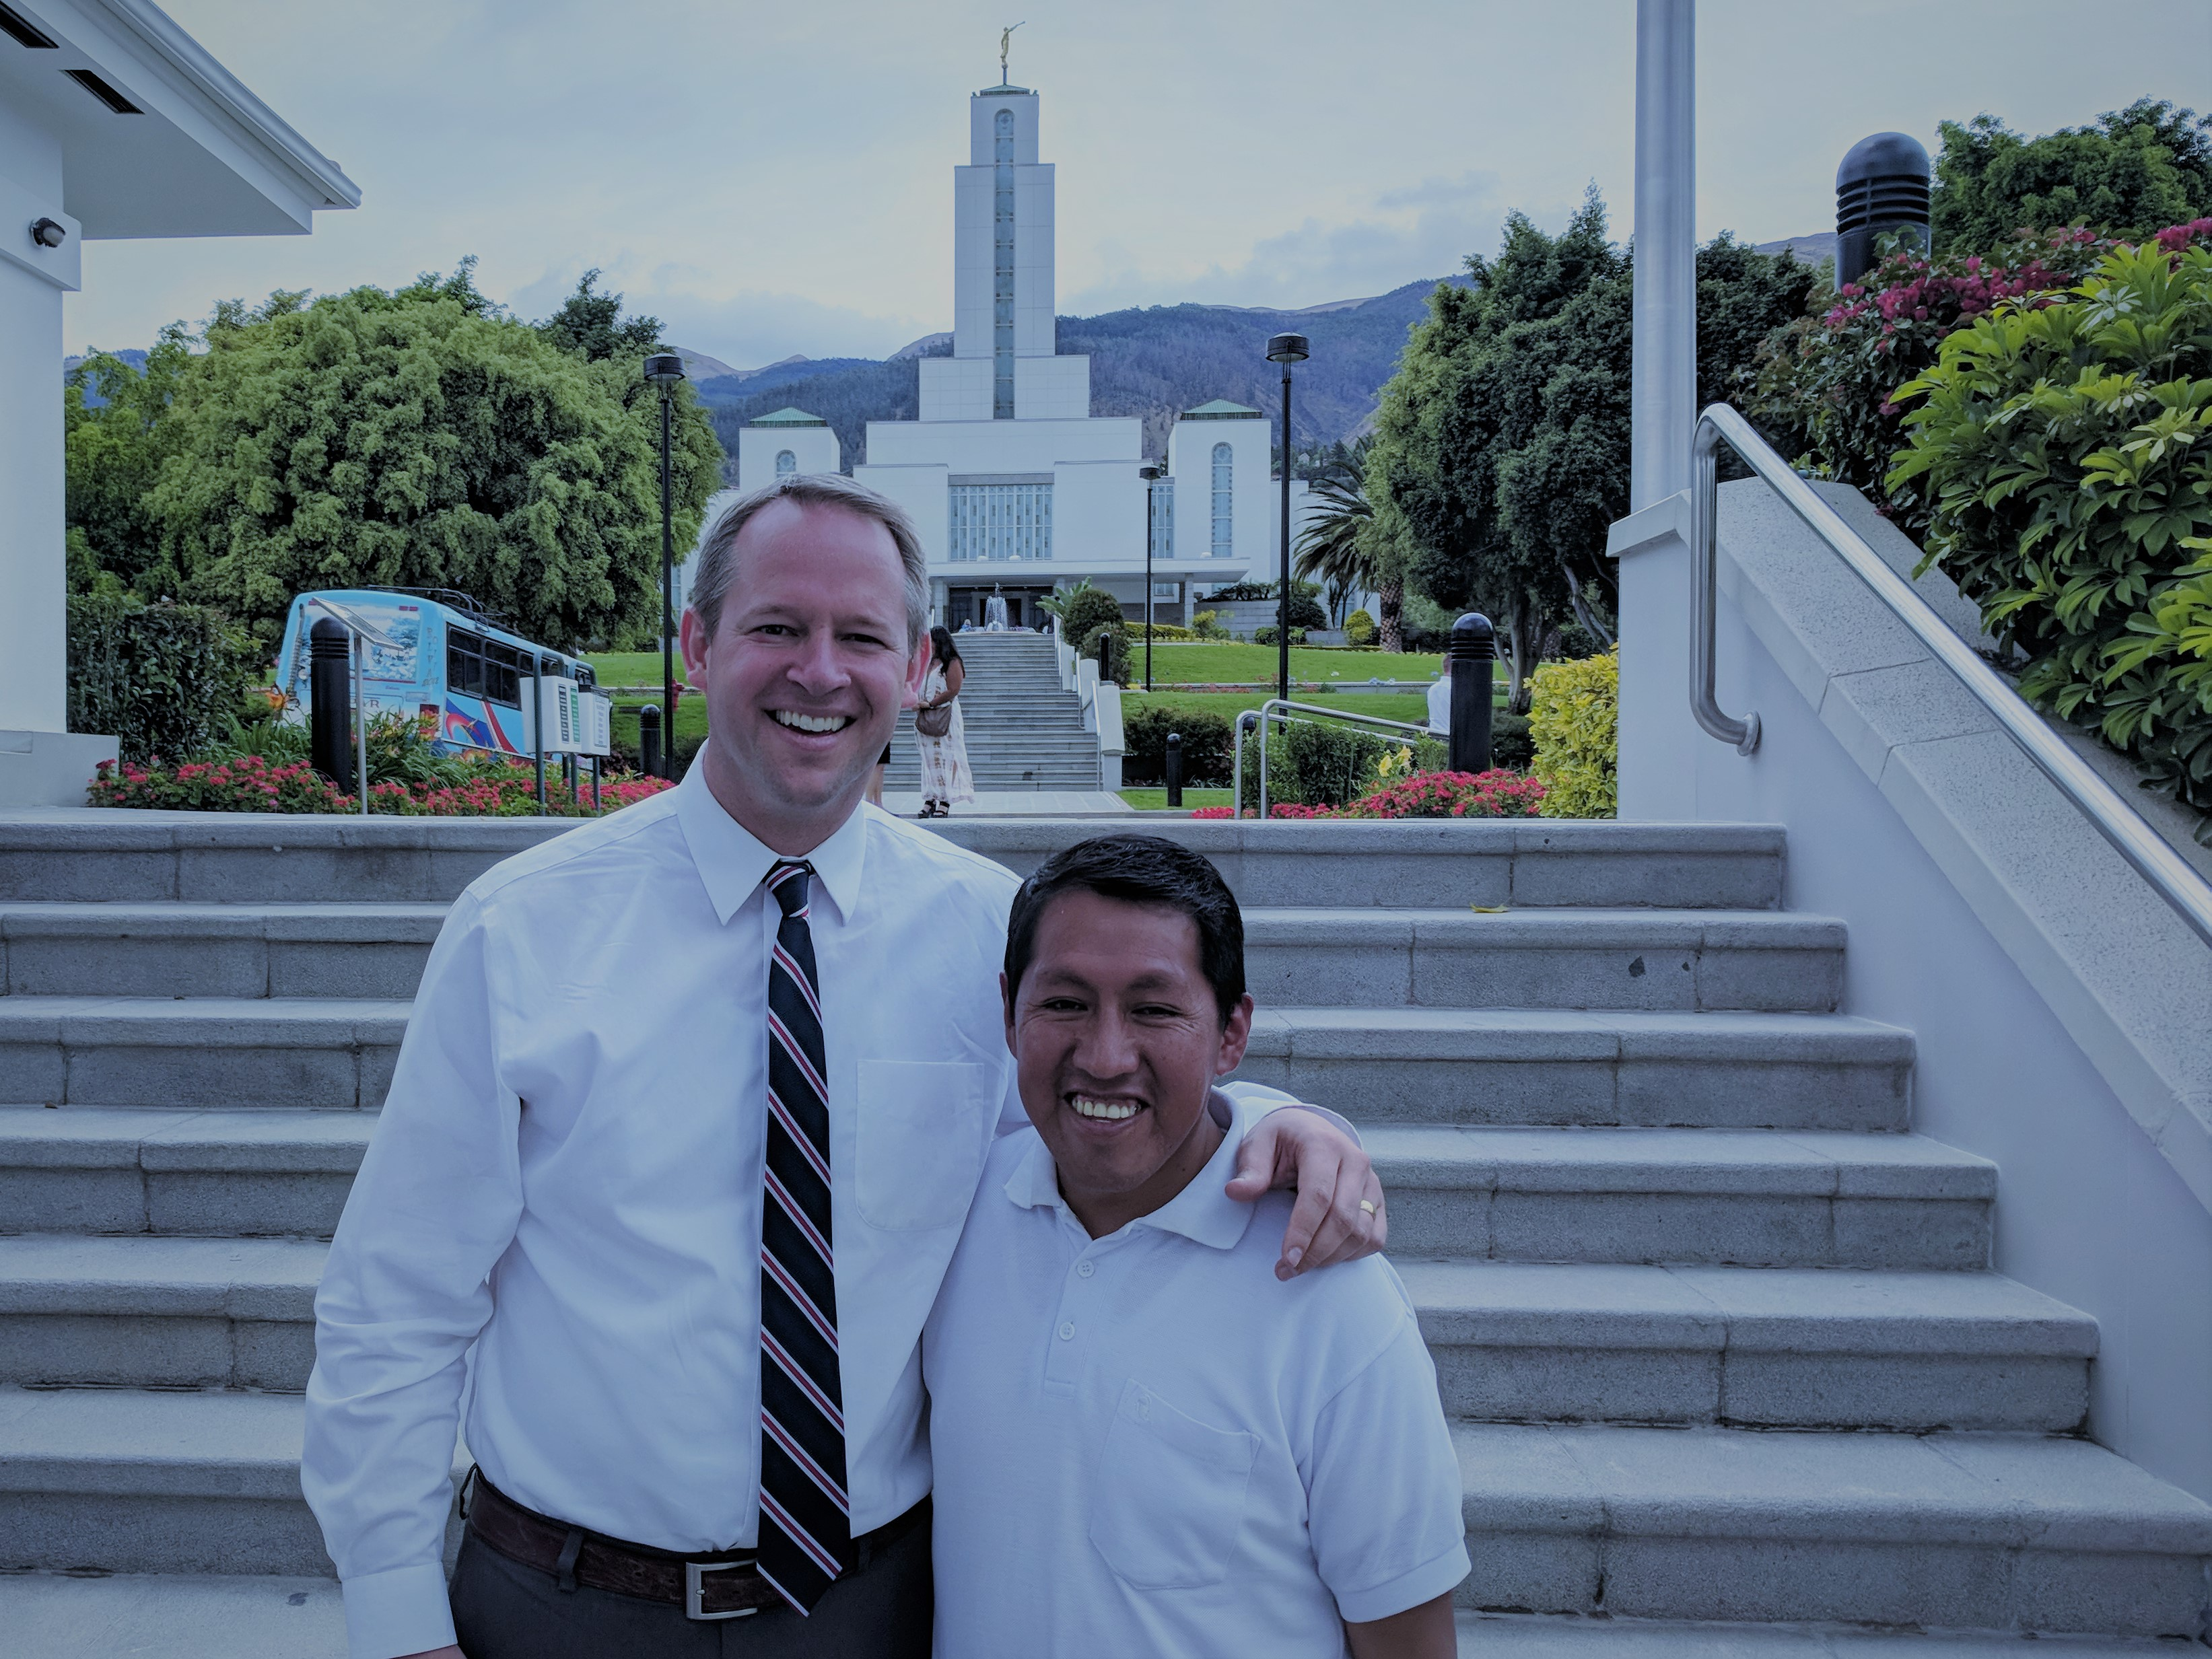 David McConkie with his friend from 20 years ago, then-Elder Javier Paco, outside the Cochabamba temple where they recently reunited in October.